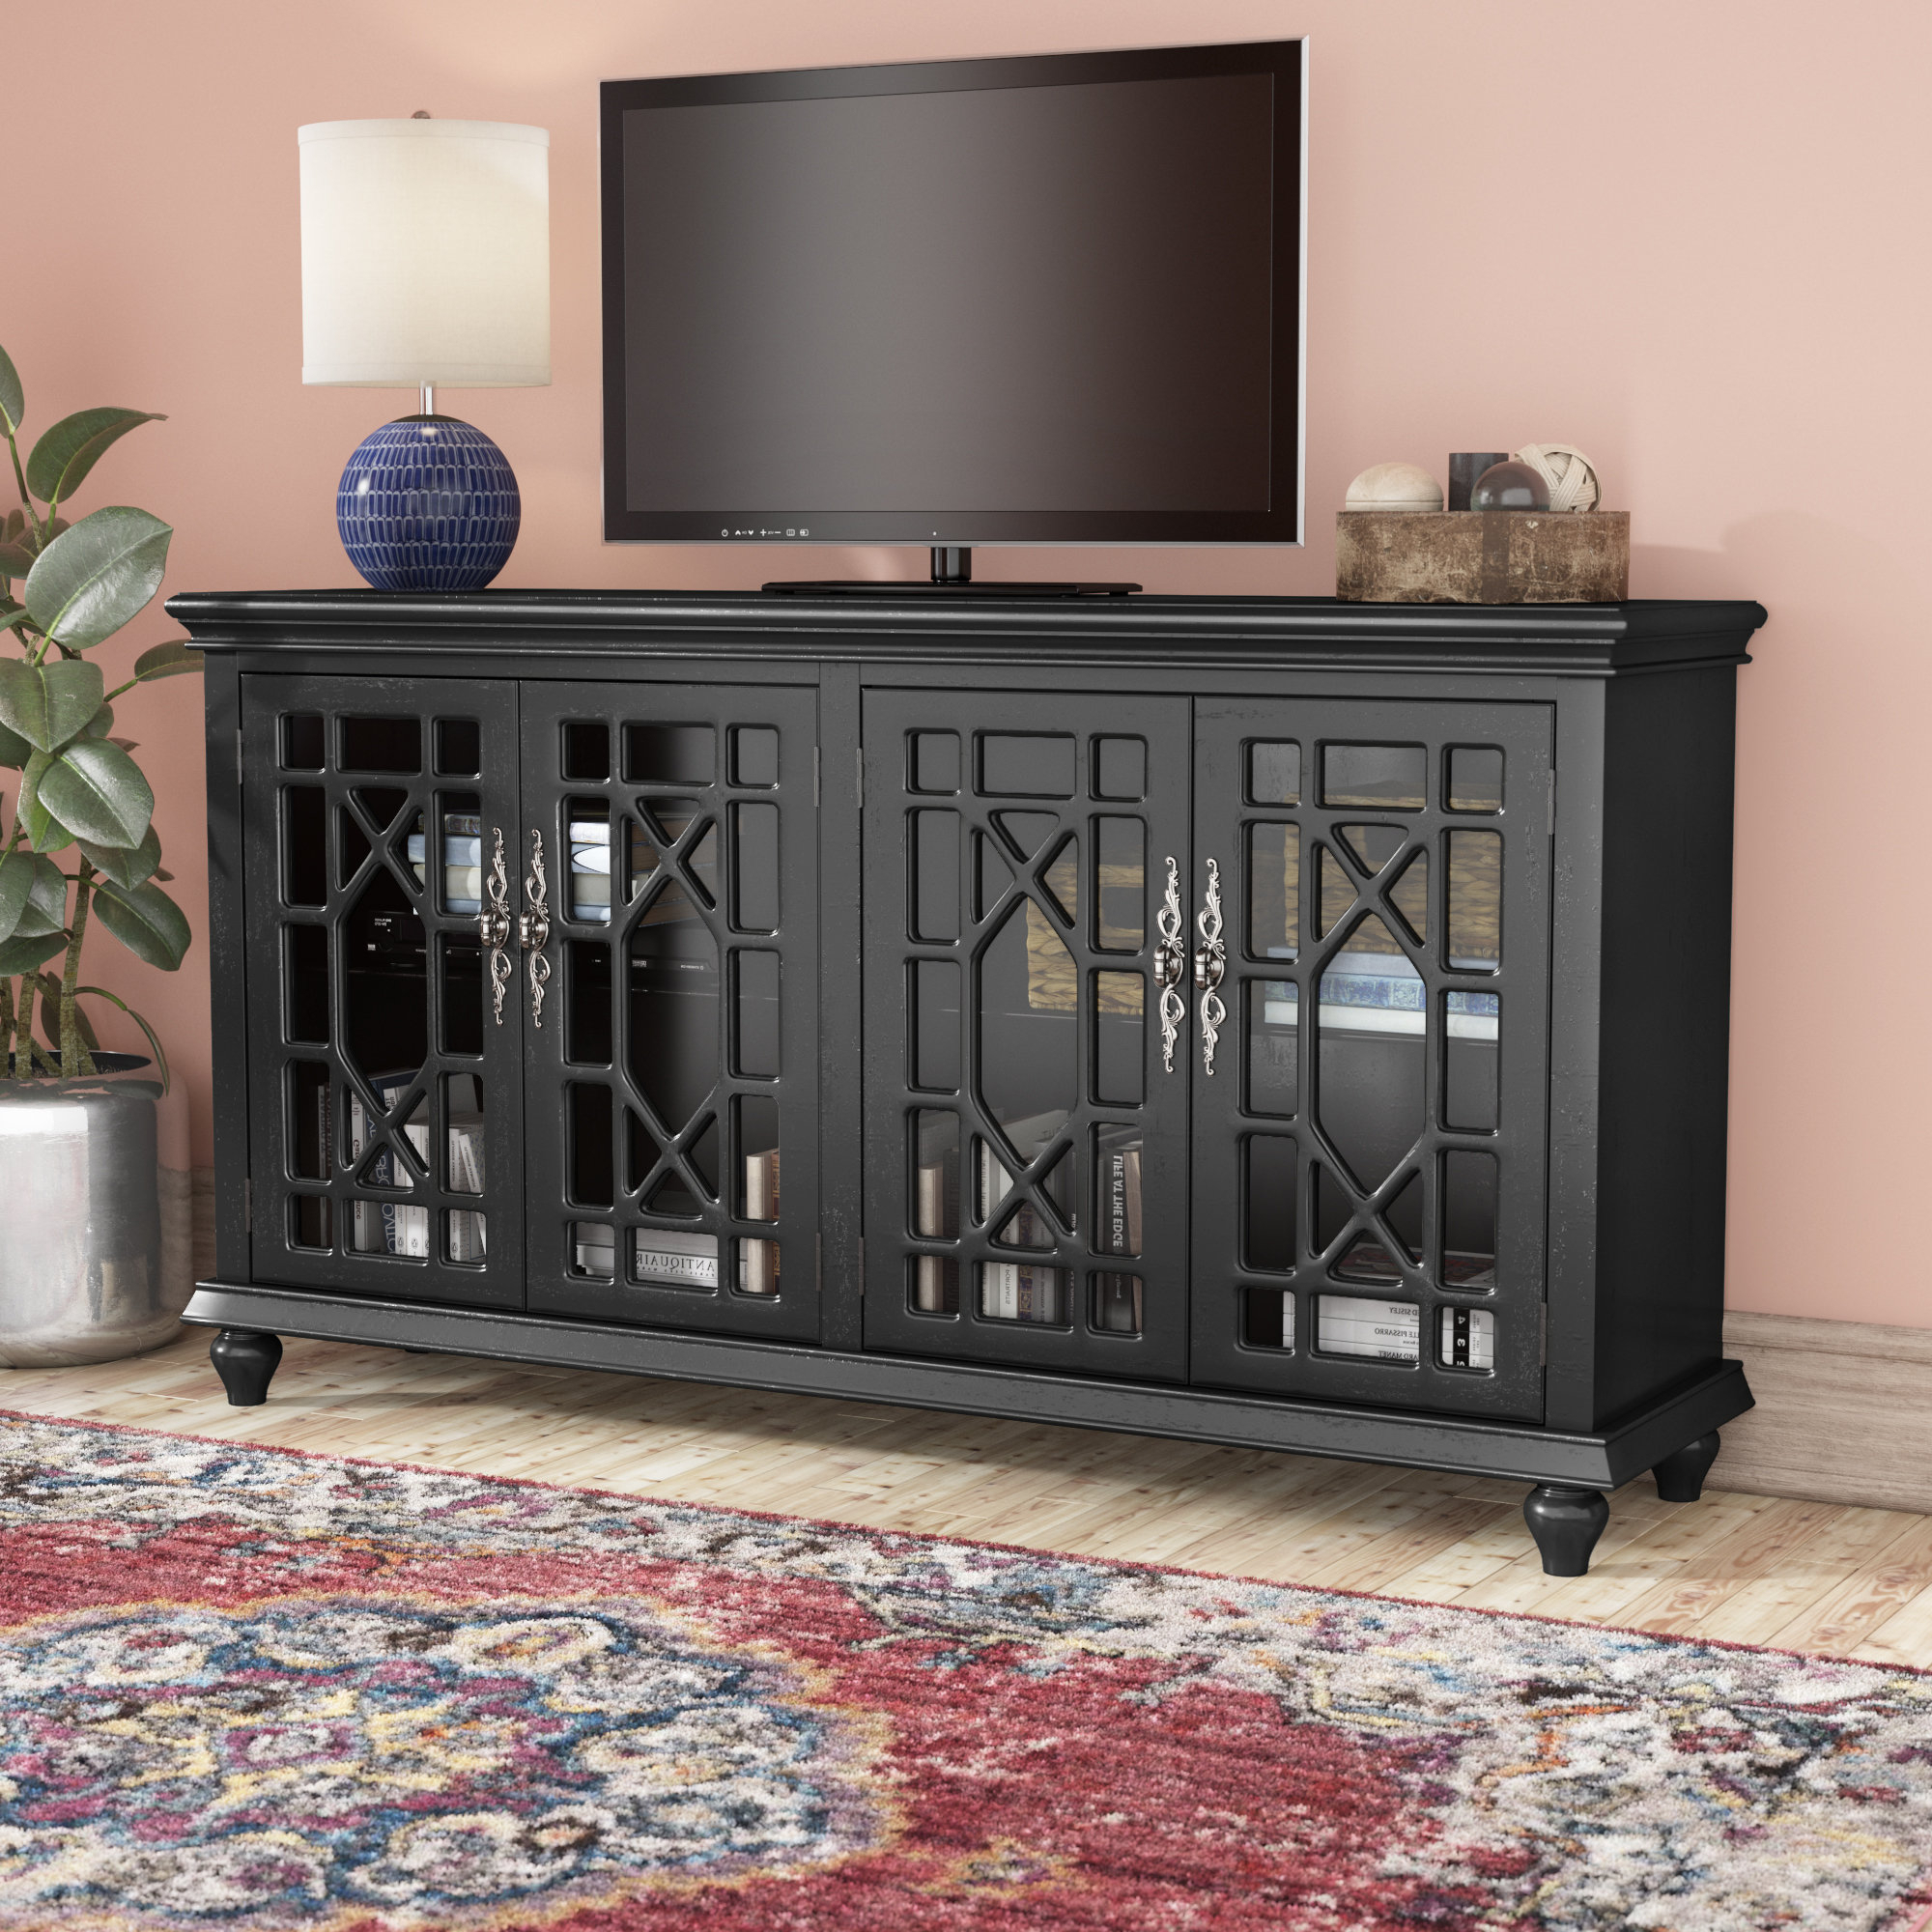 """Colefax Vintage Tv Stands For Tvs Up To 78"""" For Best And Newest Mistana Ira Tv Stand For Tvs Up To 70"""" (Gallery 9 of 20)"""